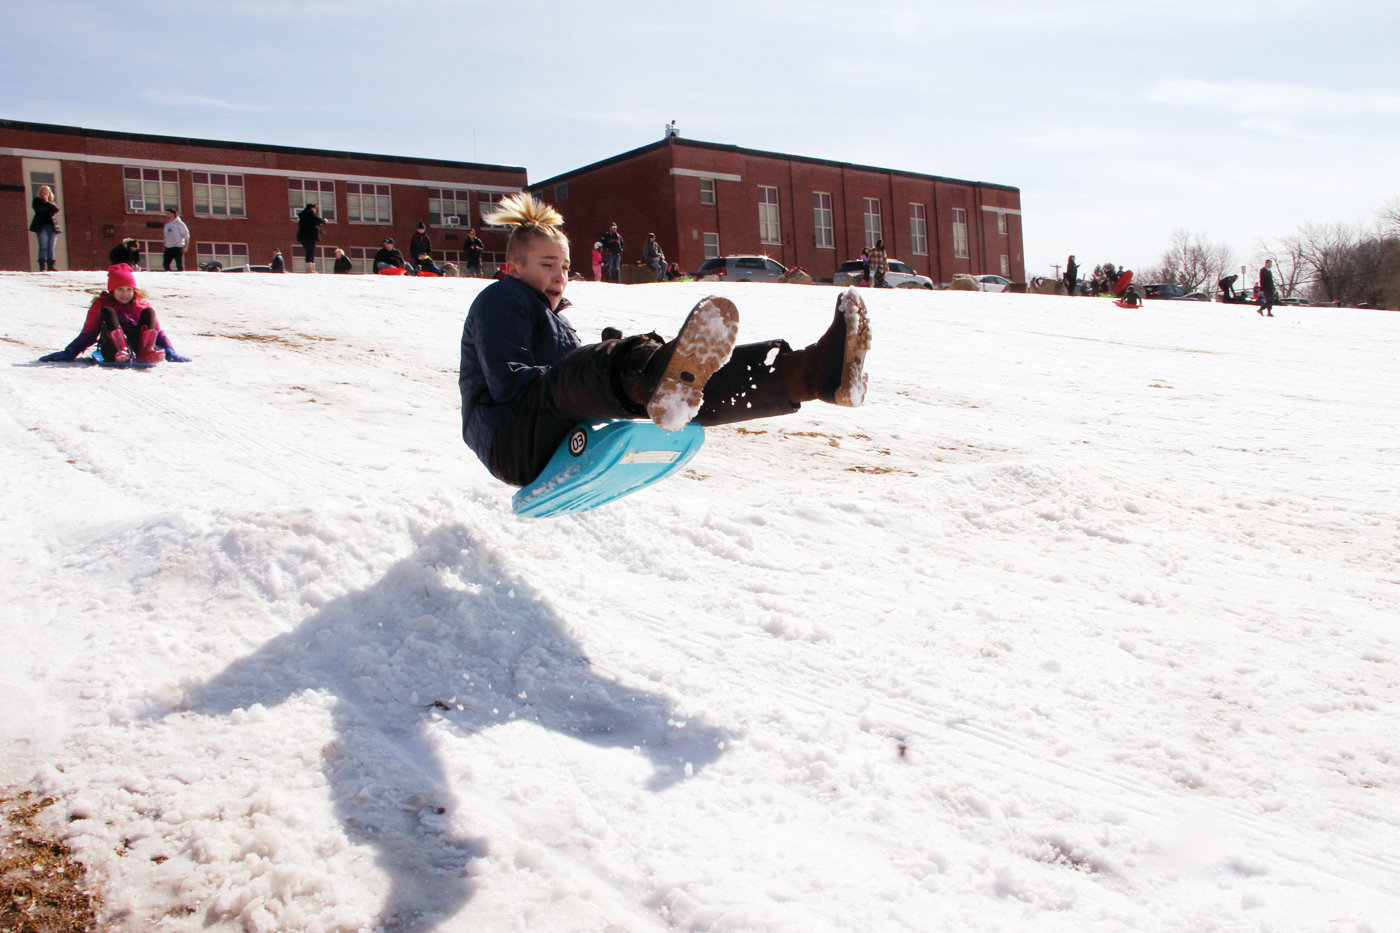 FLYING THROUGH WINTER: One of the scores who found sledding conditions ideal Sunday at the former Gorton Junior High School takes to the air from one of several bumps kids built for that purpose.